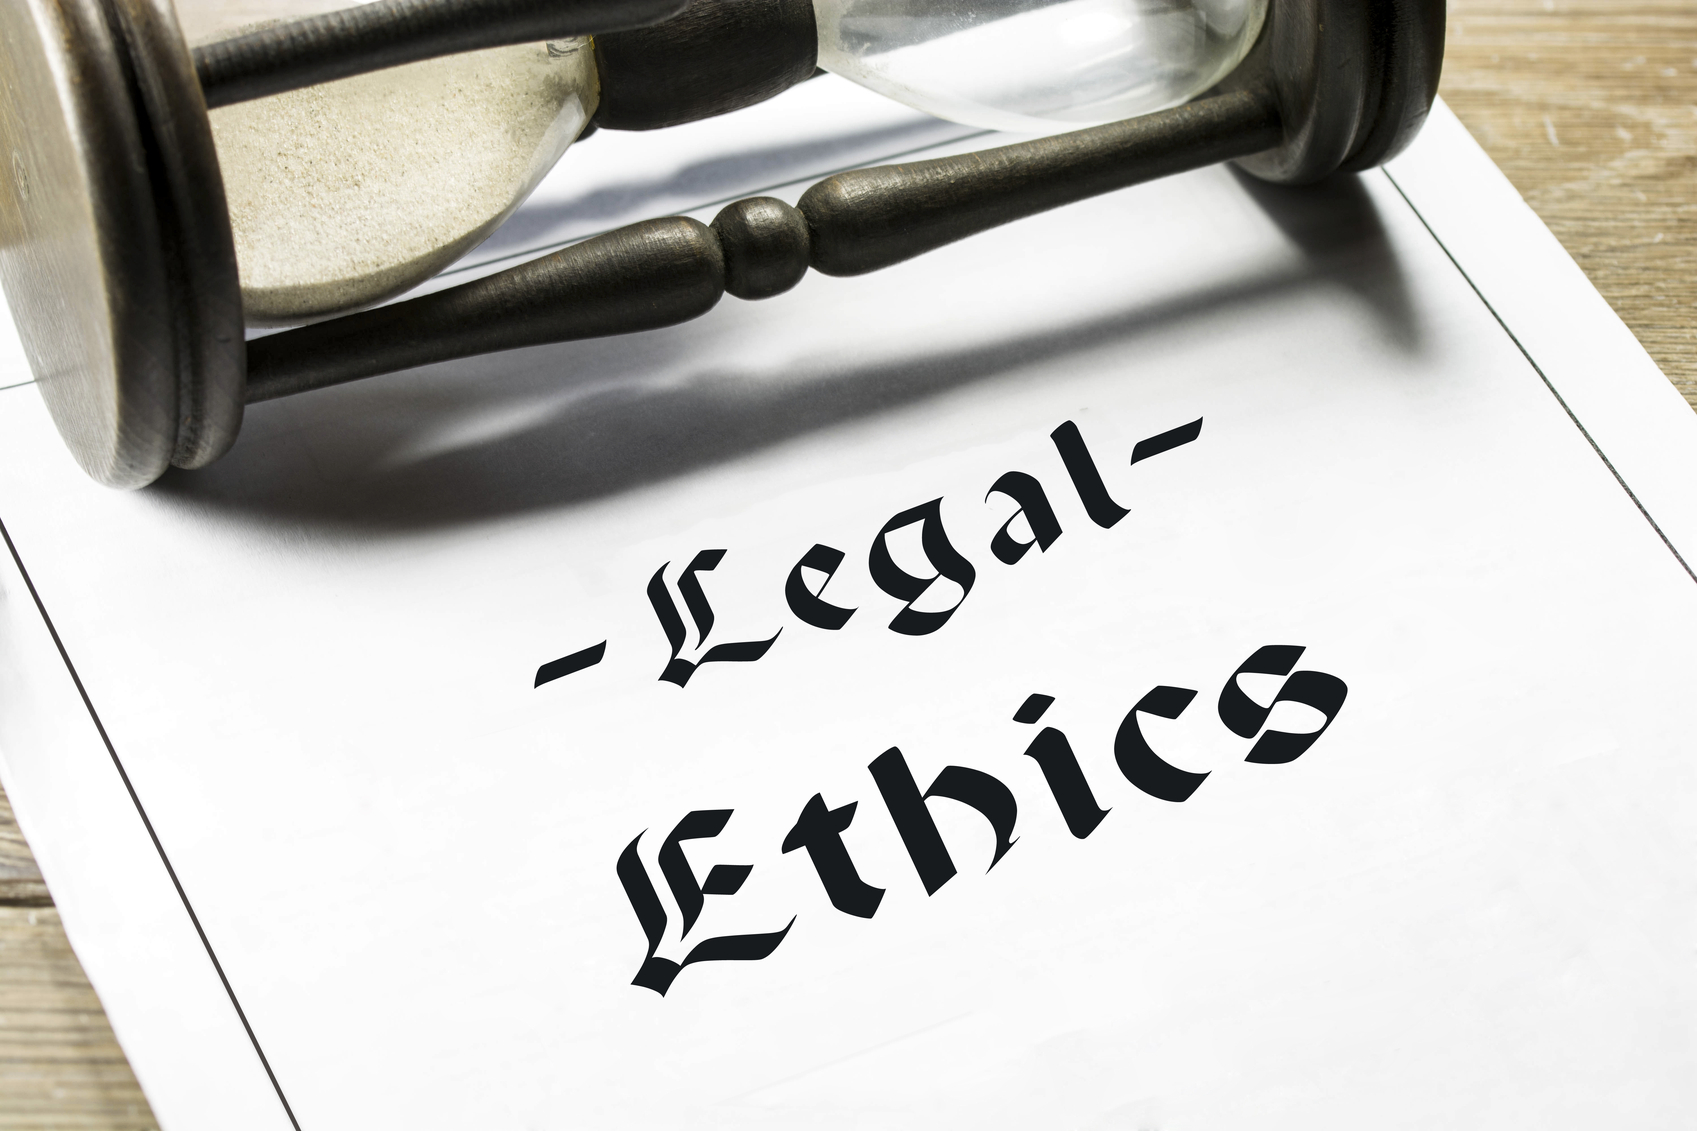 legal ethical conduct Ethics or moral philosophy is a branch of philosophy that involves systematizing, defending, and recommending concepts of right and wrong conduct the term ethics.